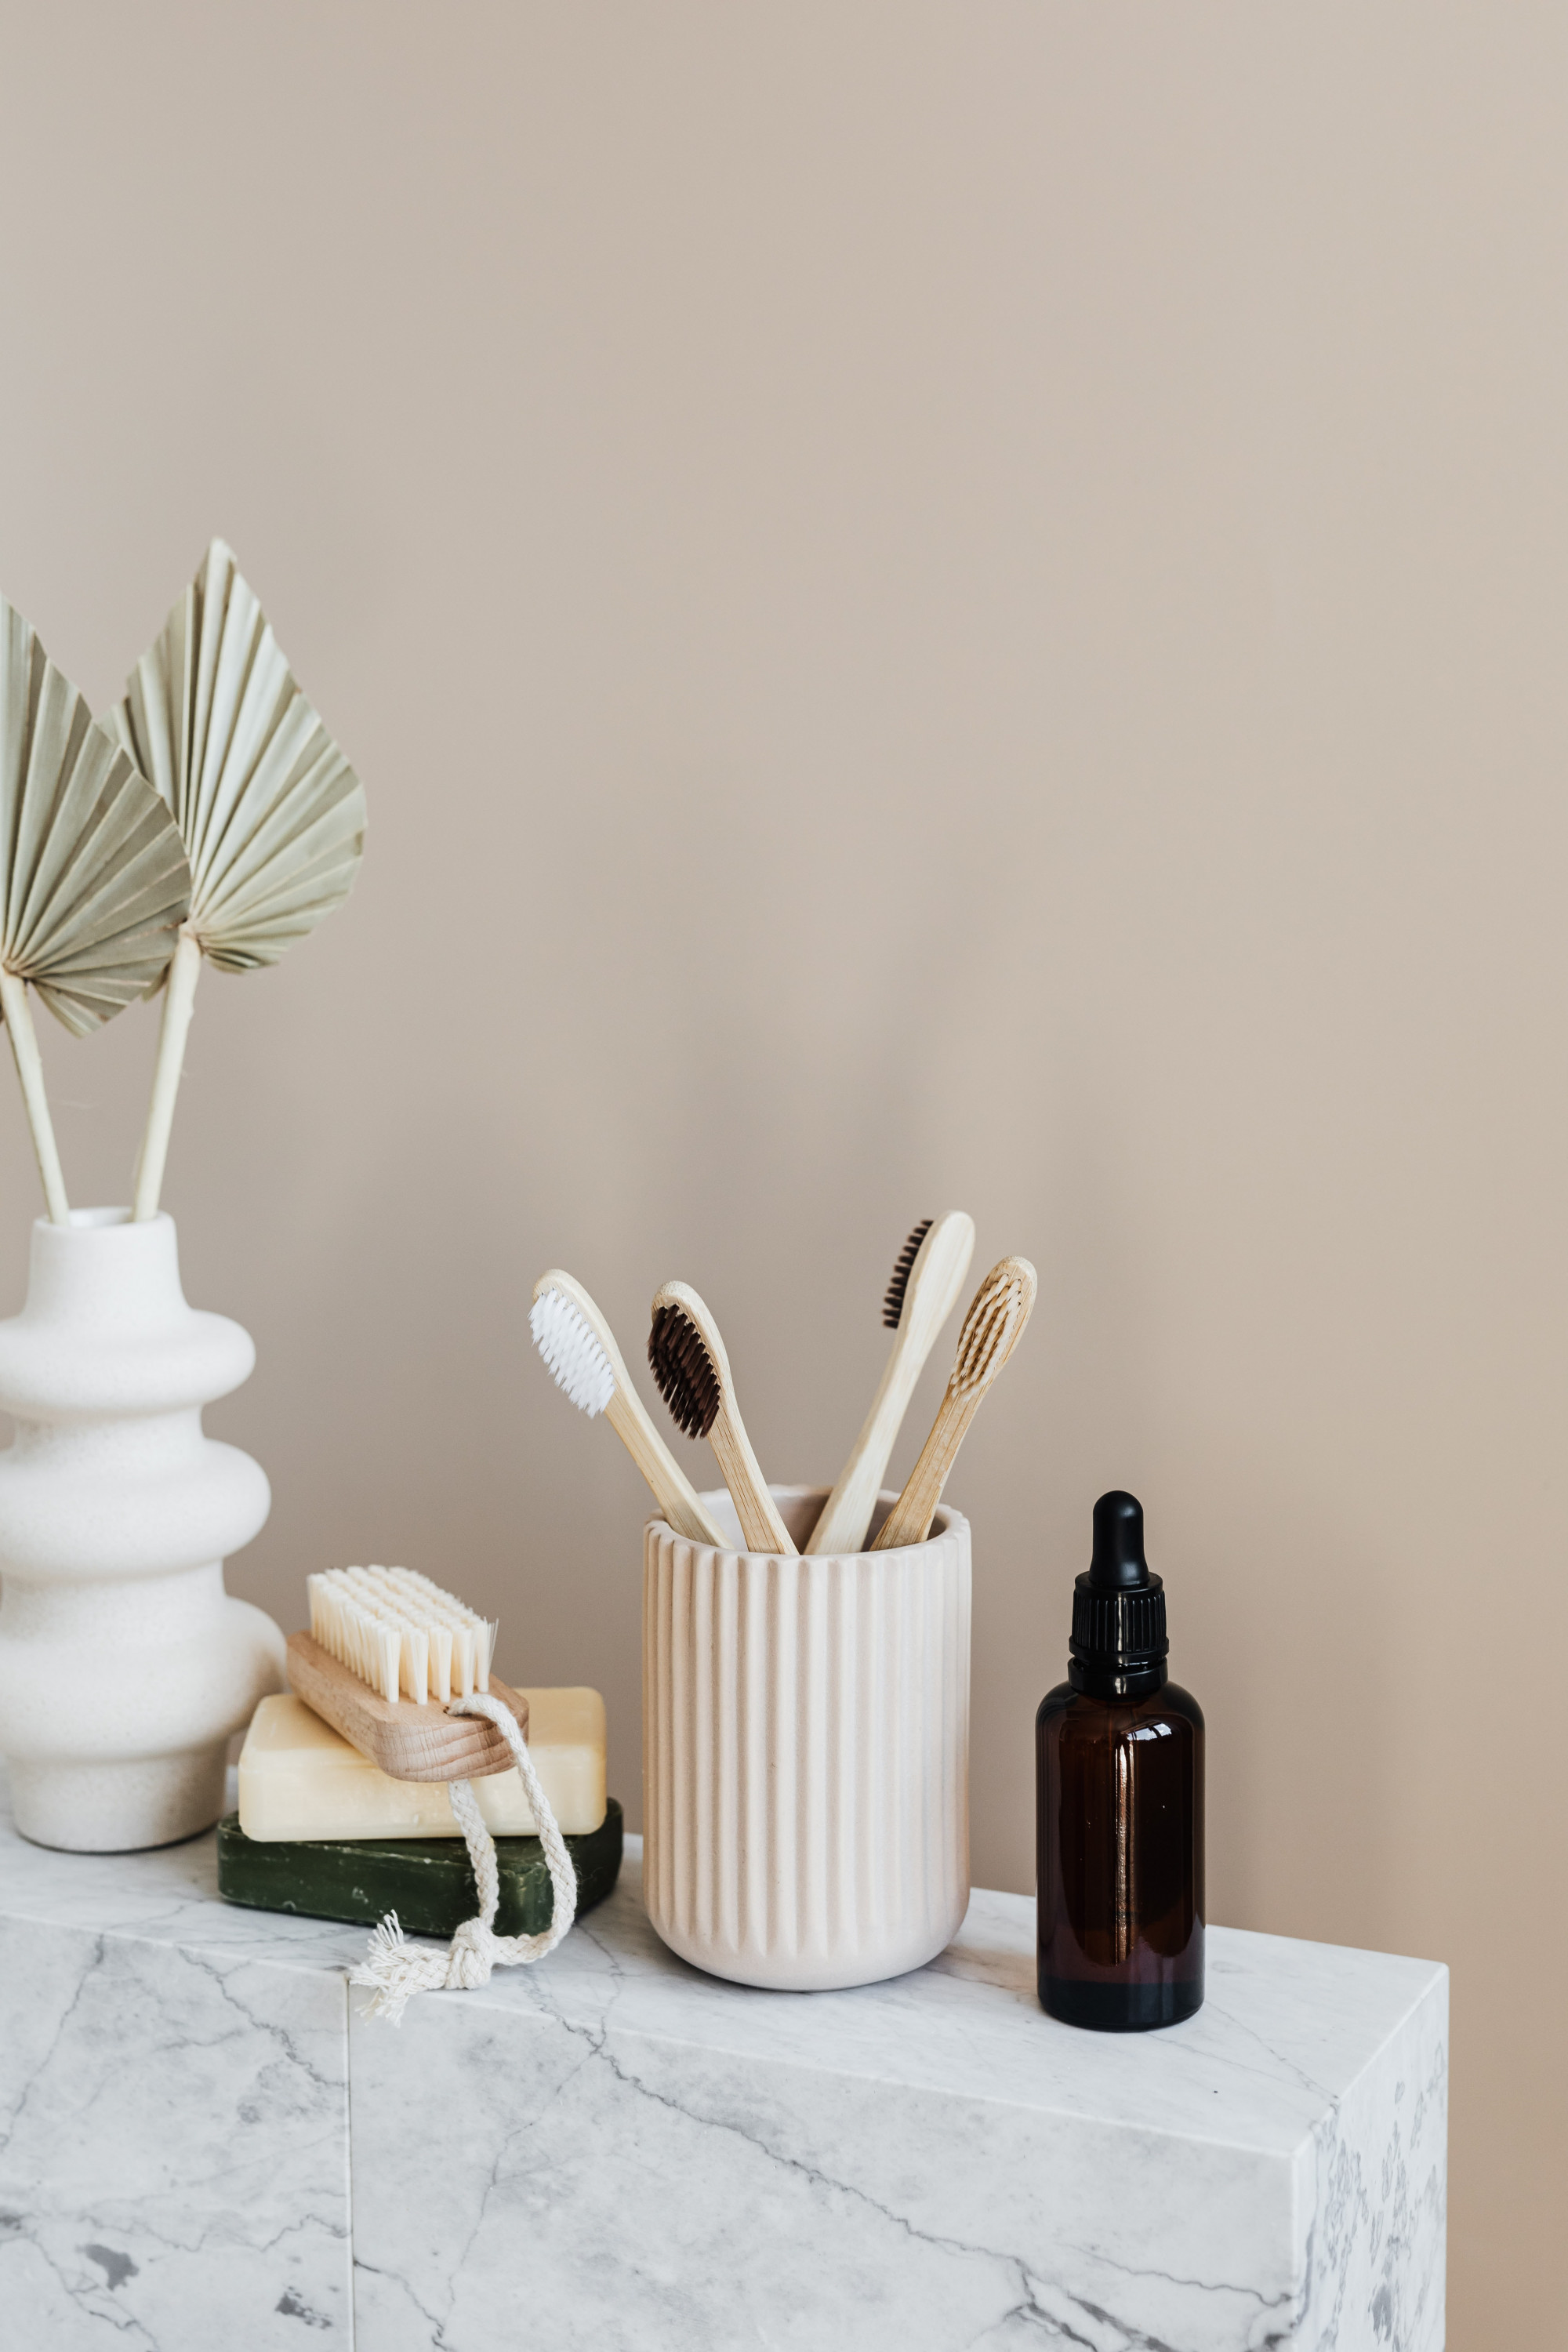 A shot of four bamboo toothbrushes in a ceramic holder, alongside a serum bottle and a nail brush.